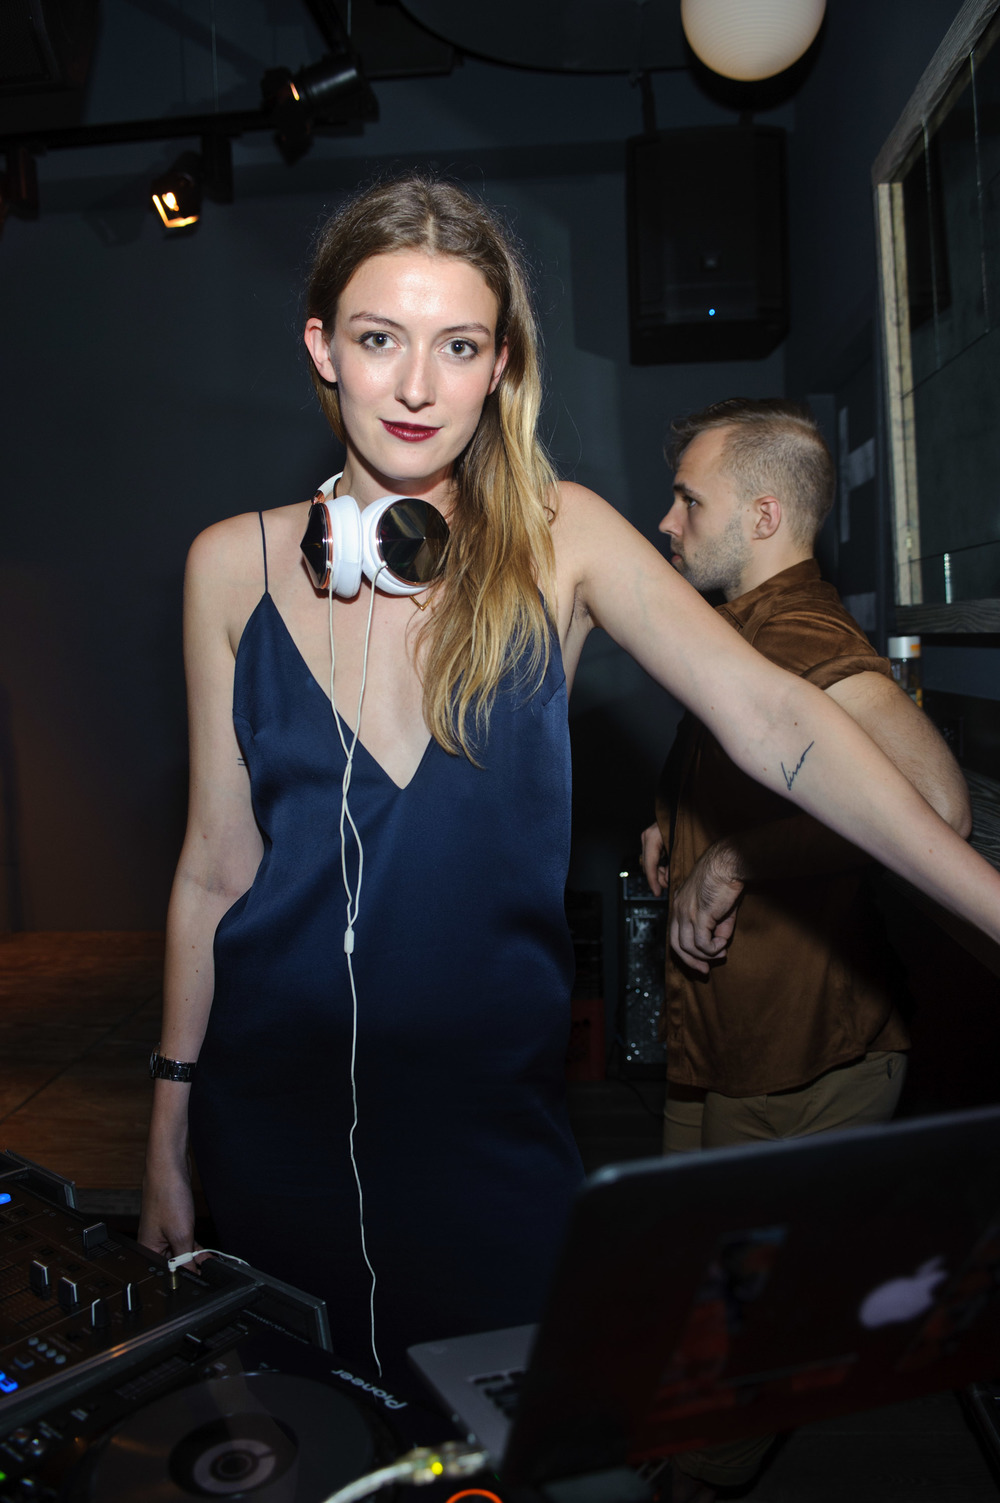 Leslie Kirchoff DJs at NYLON Nights Chicago at The Virgin Hotel on July 28, 2016 in Chicago, Illinois.  (Photo by Timothy Hiatt/Getty Images for NYLON)